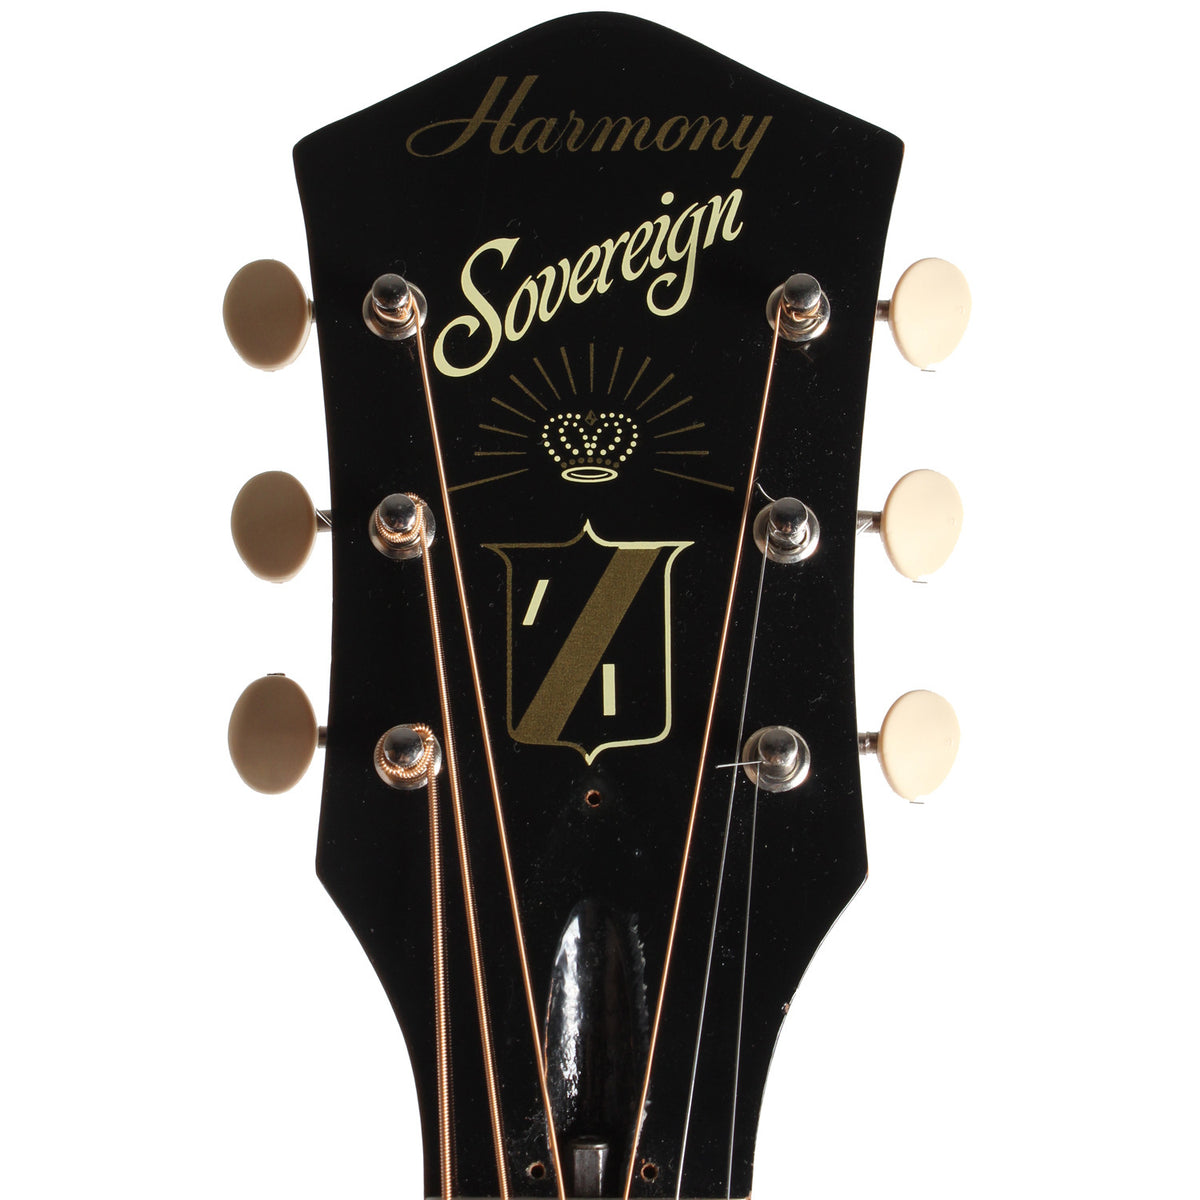 1971 Harmony Sovereign - Garrett Park Guitars  - 6